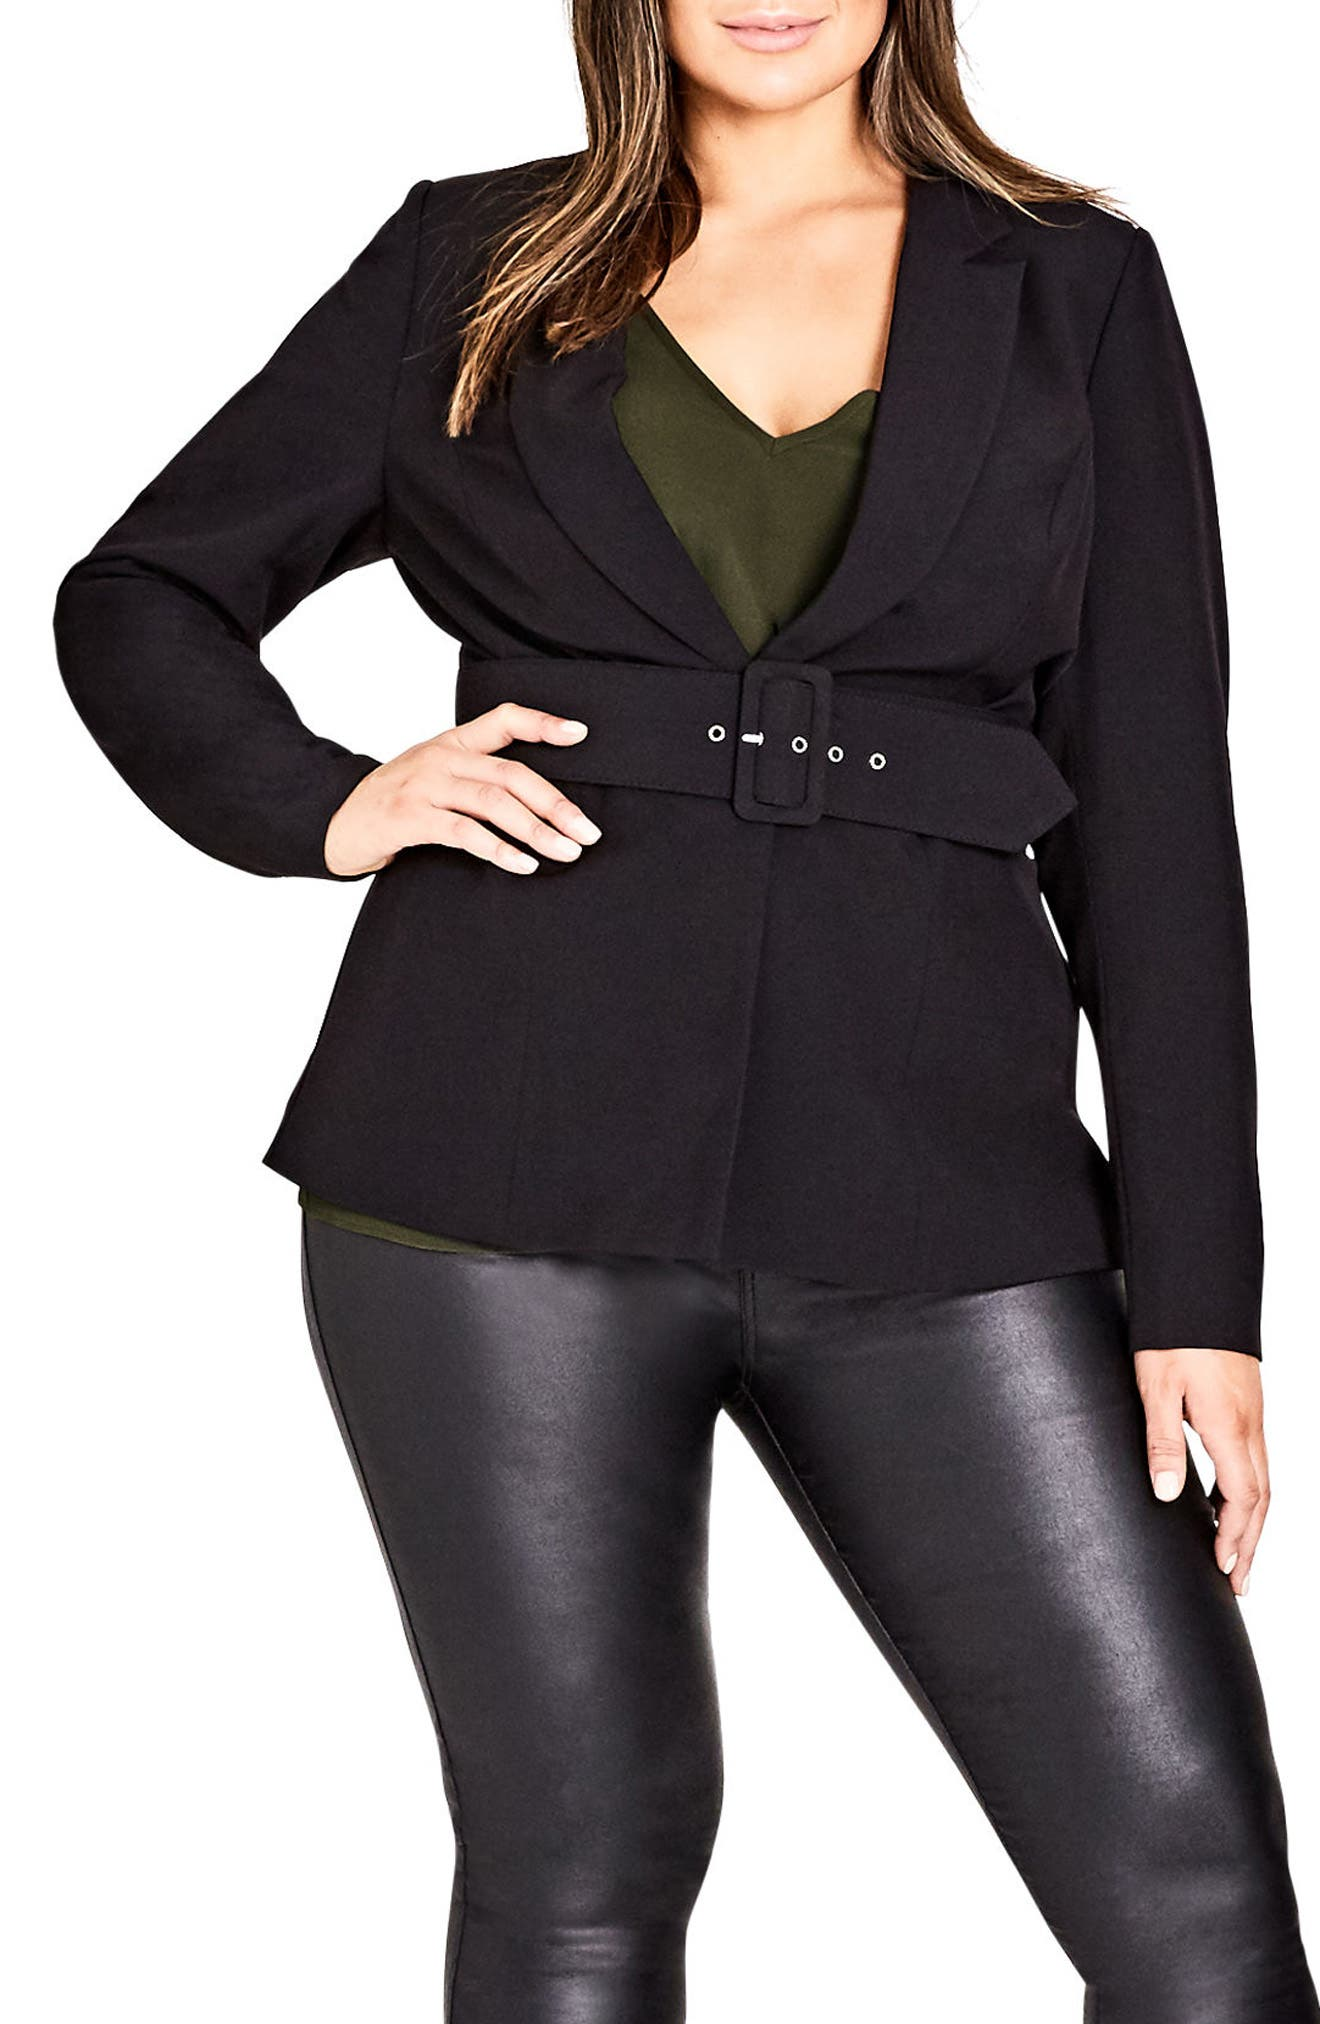 Strapped In Jacket,                             Main thumbnail 1, color,                             Black